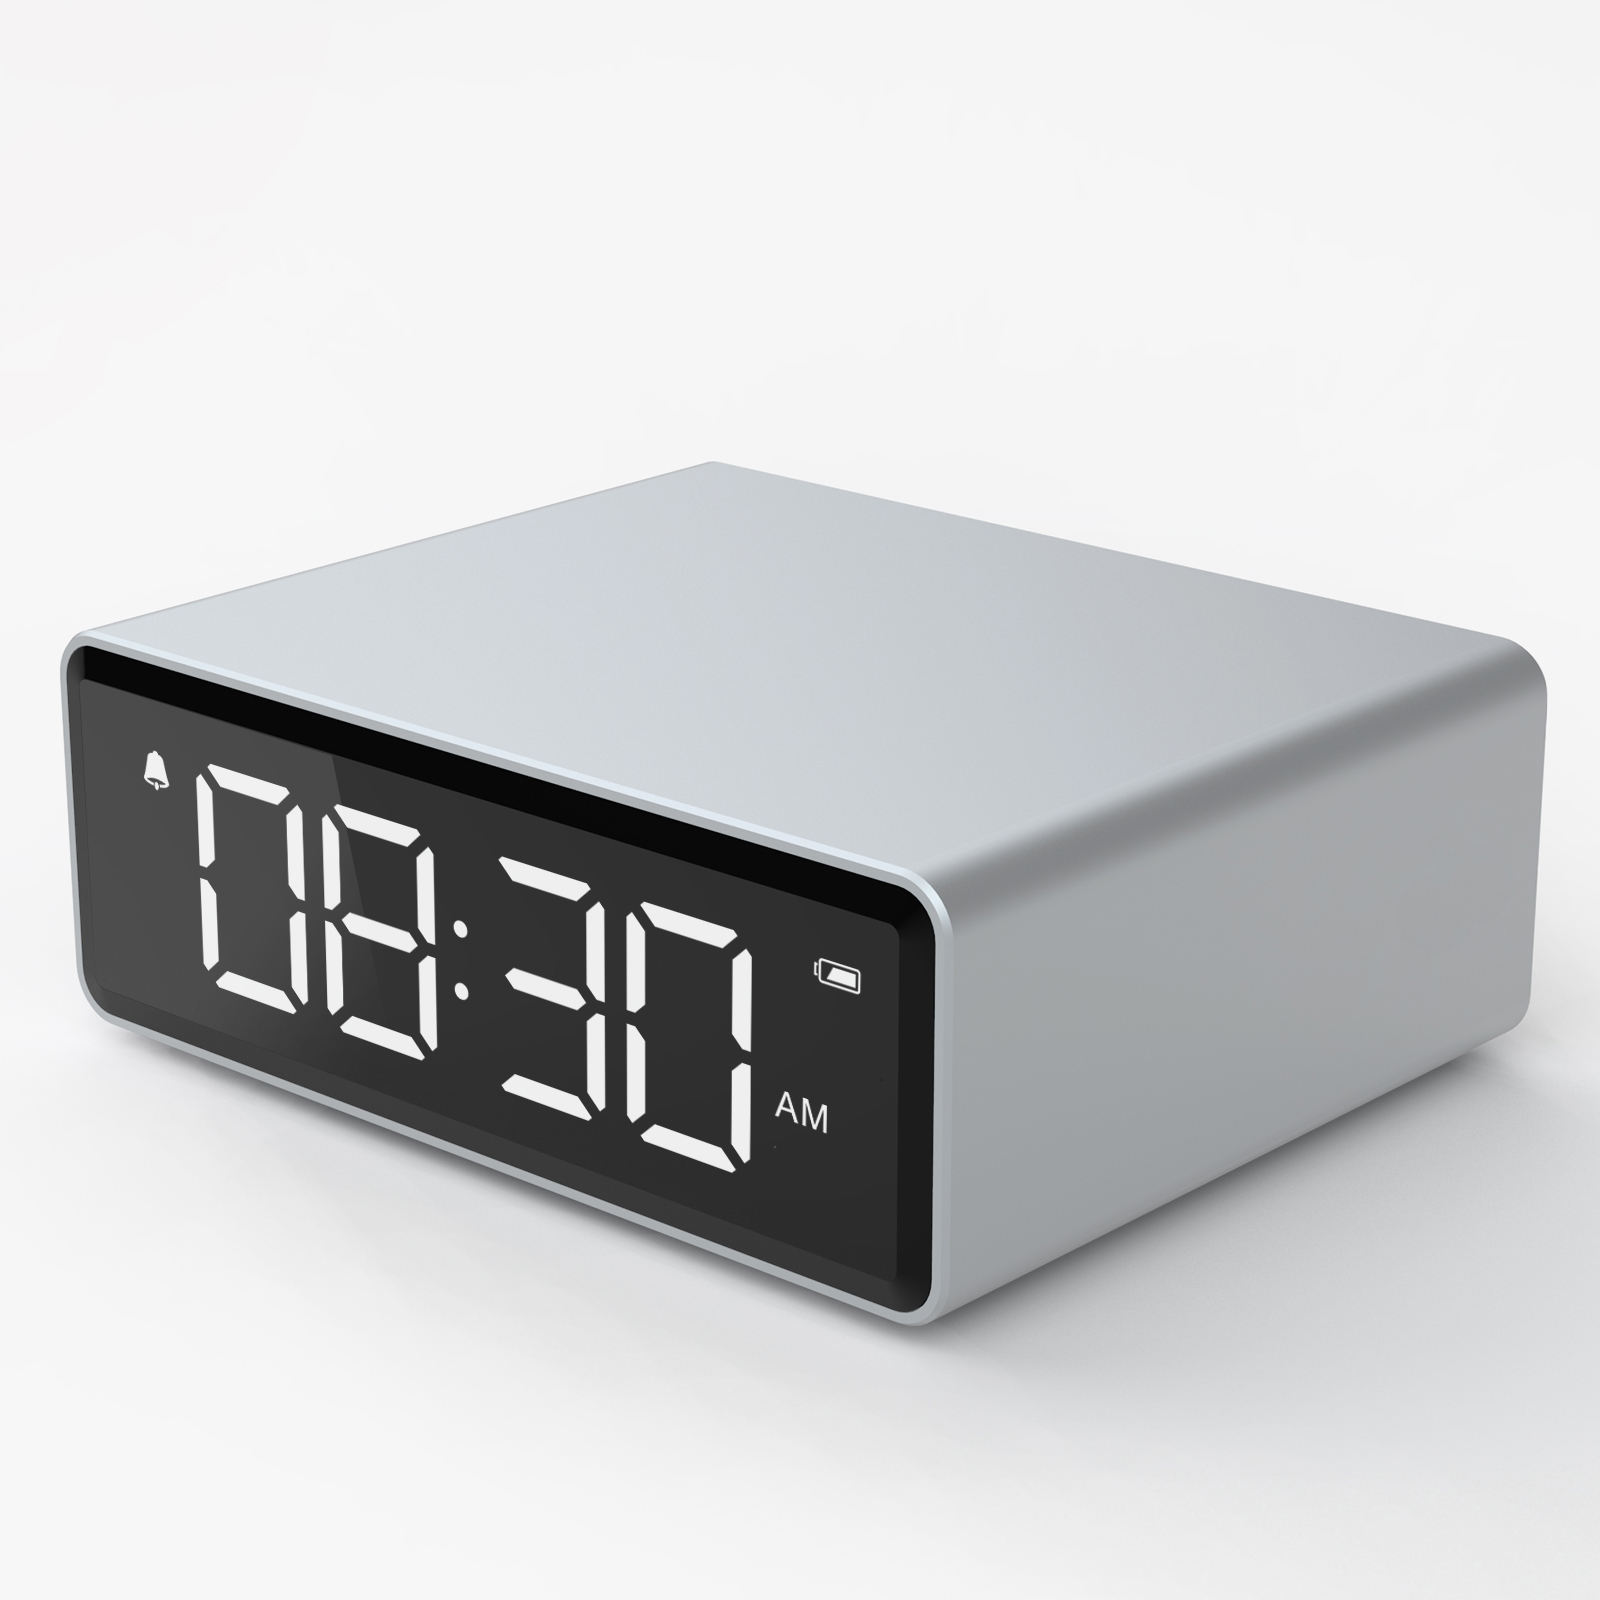 LED multi-function digital snooze display time table alarm clock